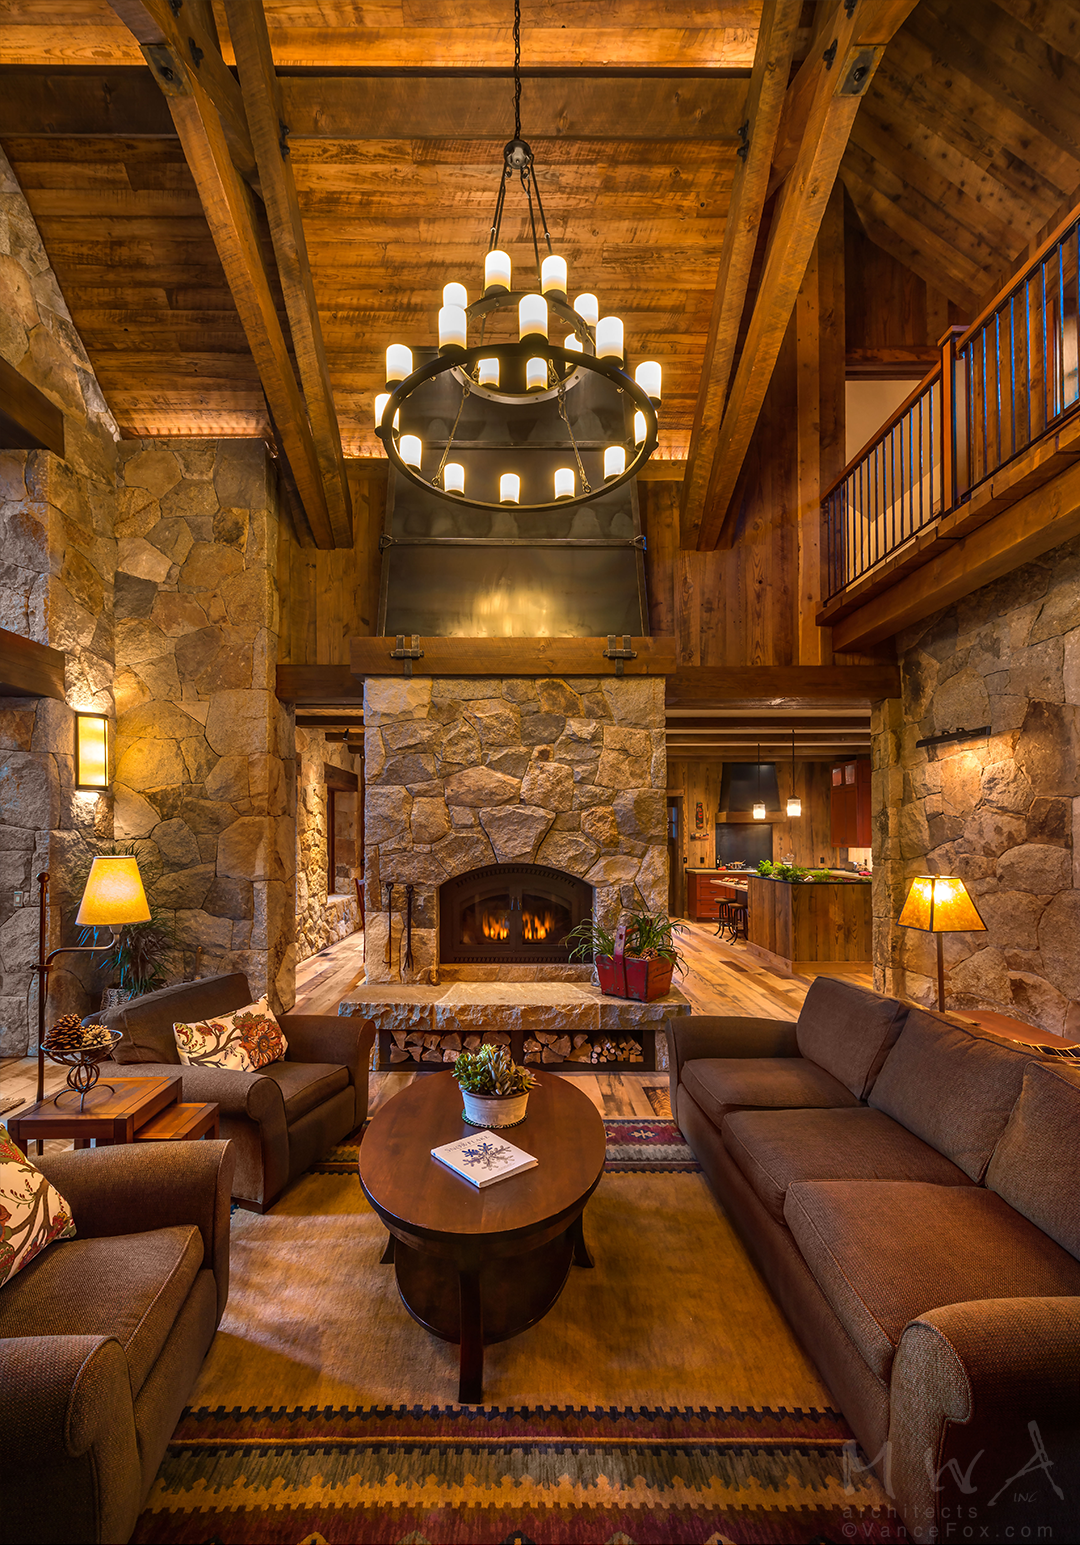 20 Living Room With Fireplace That Will Warm You All Winter Rustic Chic Living Room Log Cabin Interior Cabin Living Room